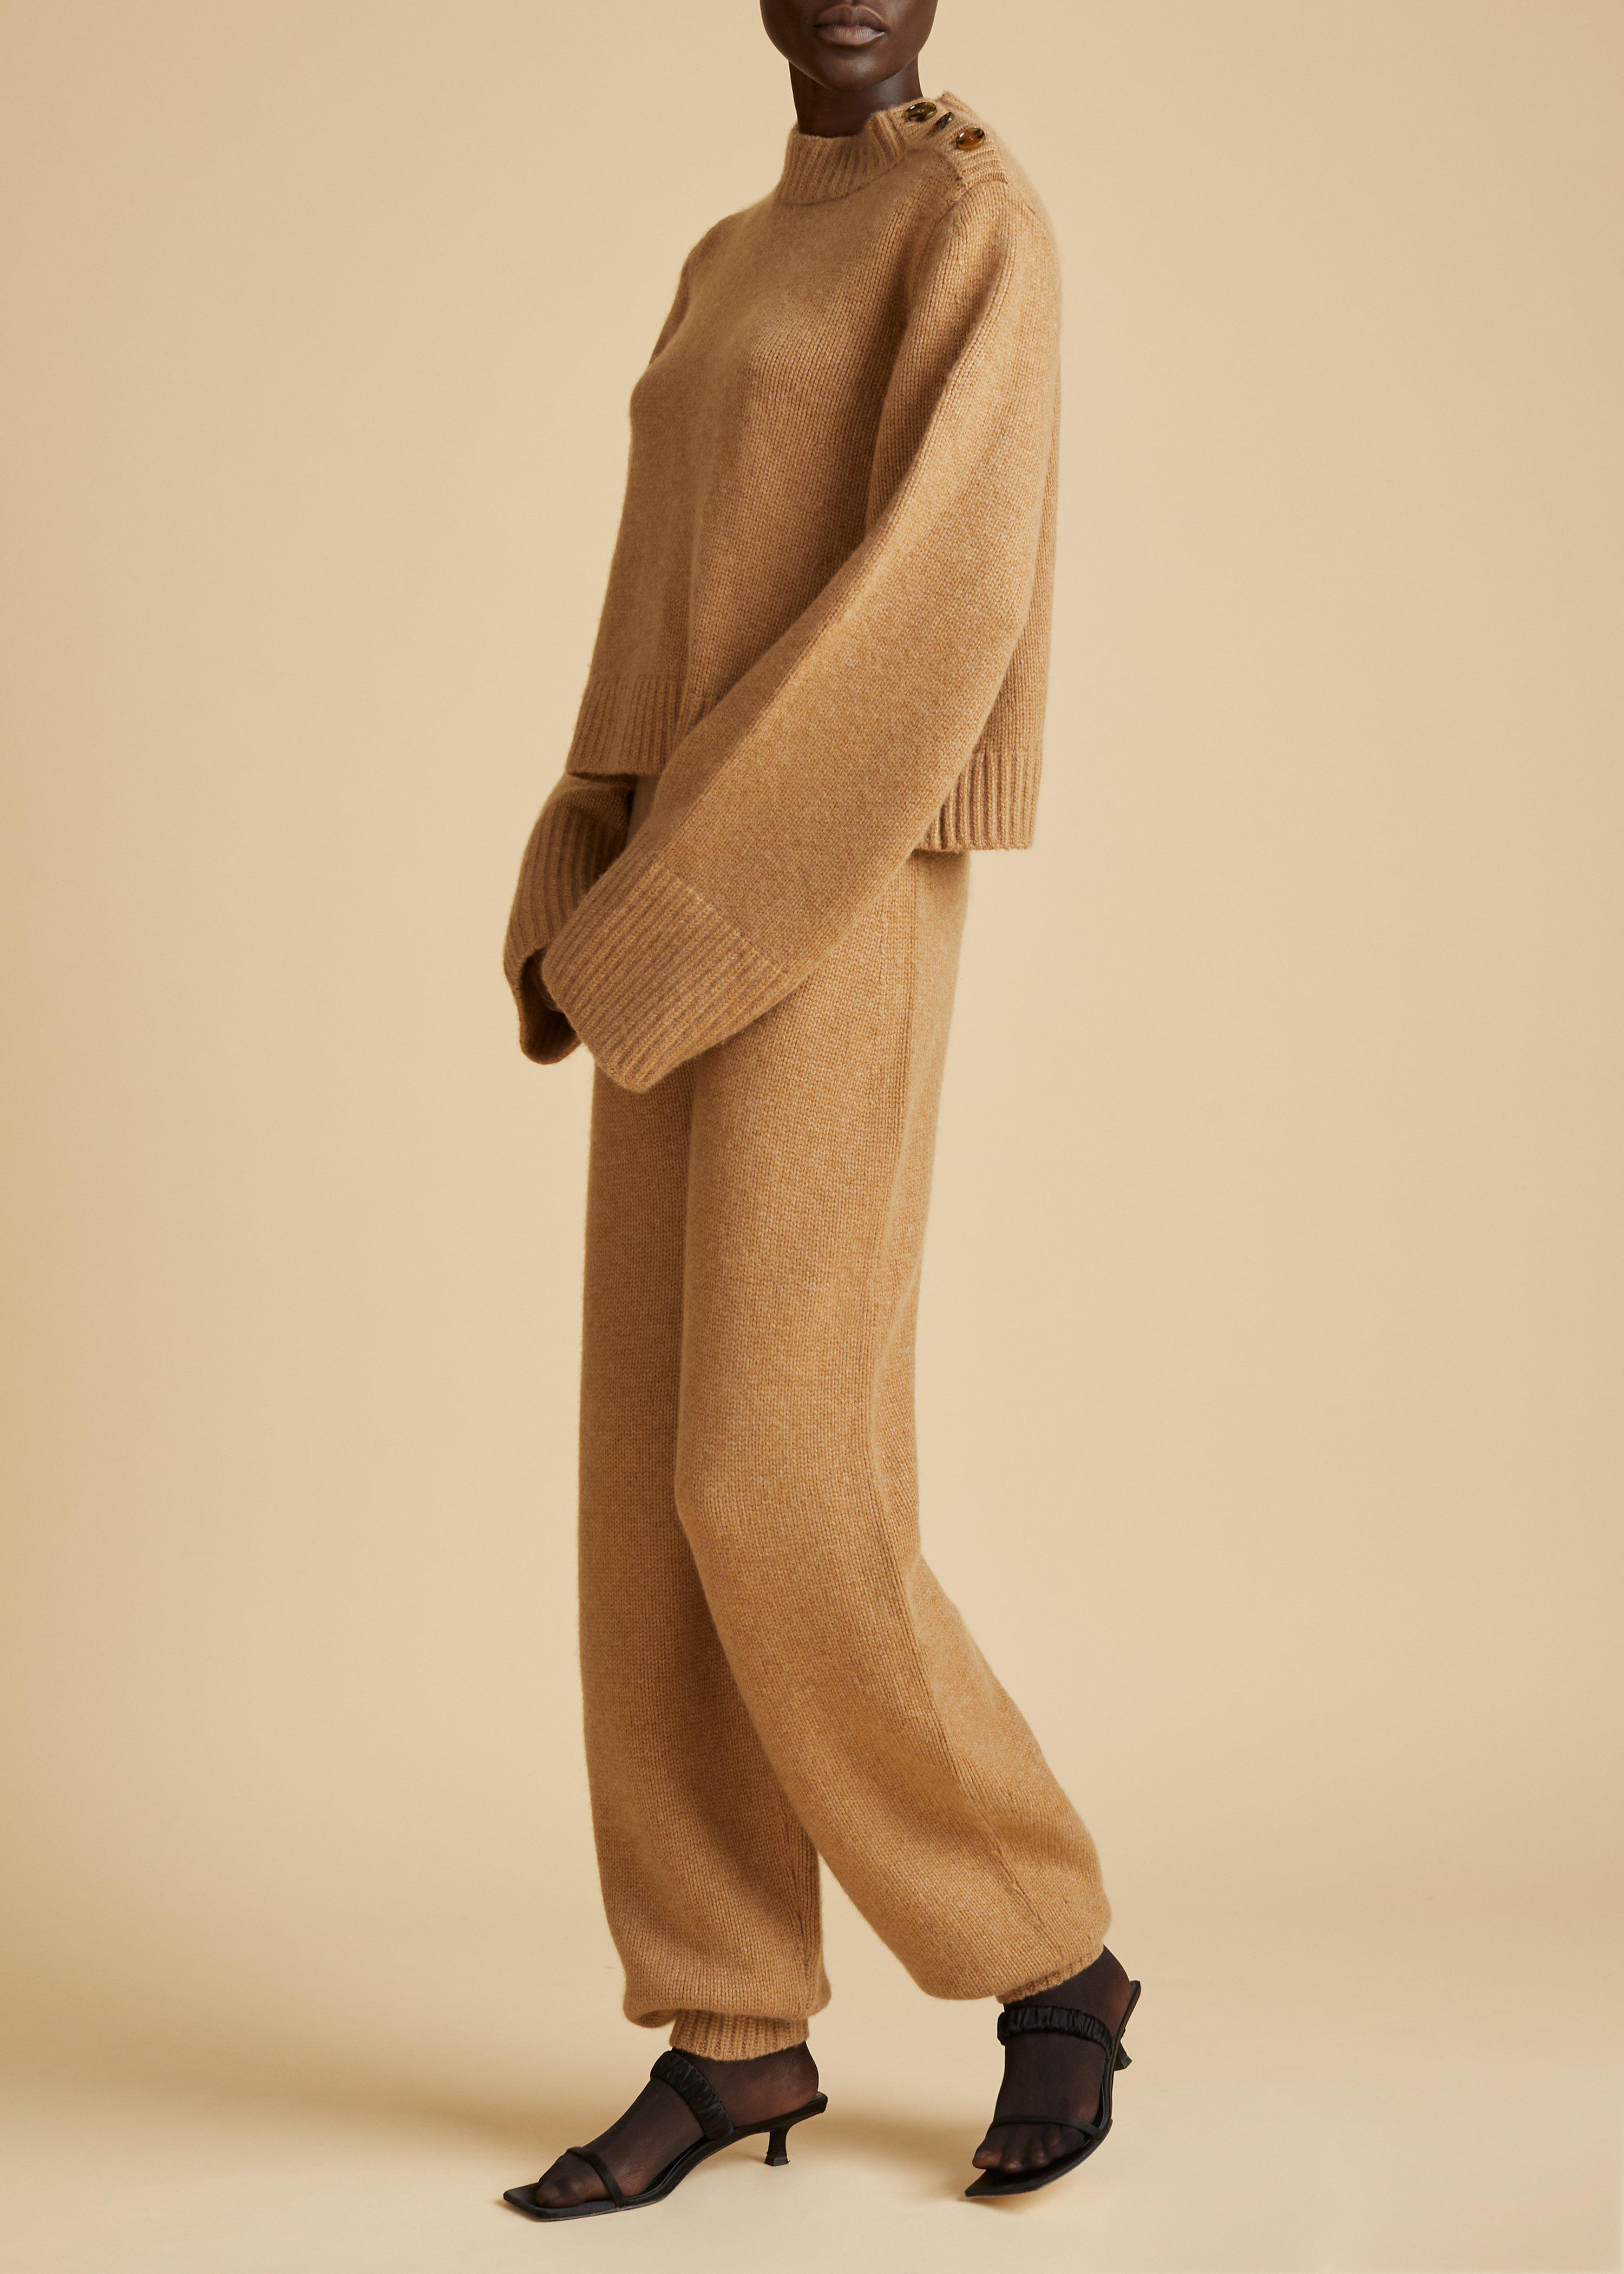 The Joey Pant in Camel